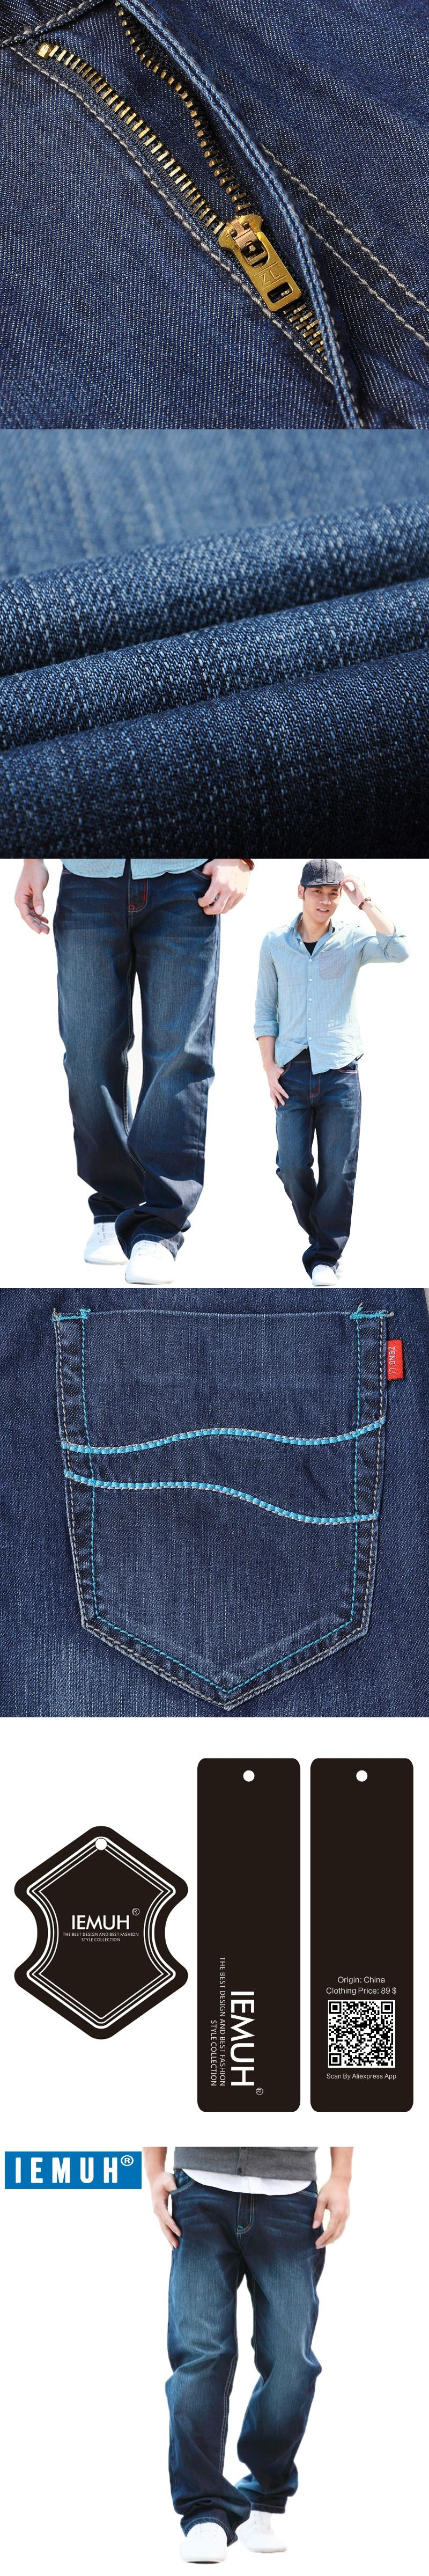 ca6492fd032 IEMUH Plus Size Jeans Man Denim Jeans Casual Middle Waist Loose Long Pants  Male Solid Straight